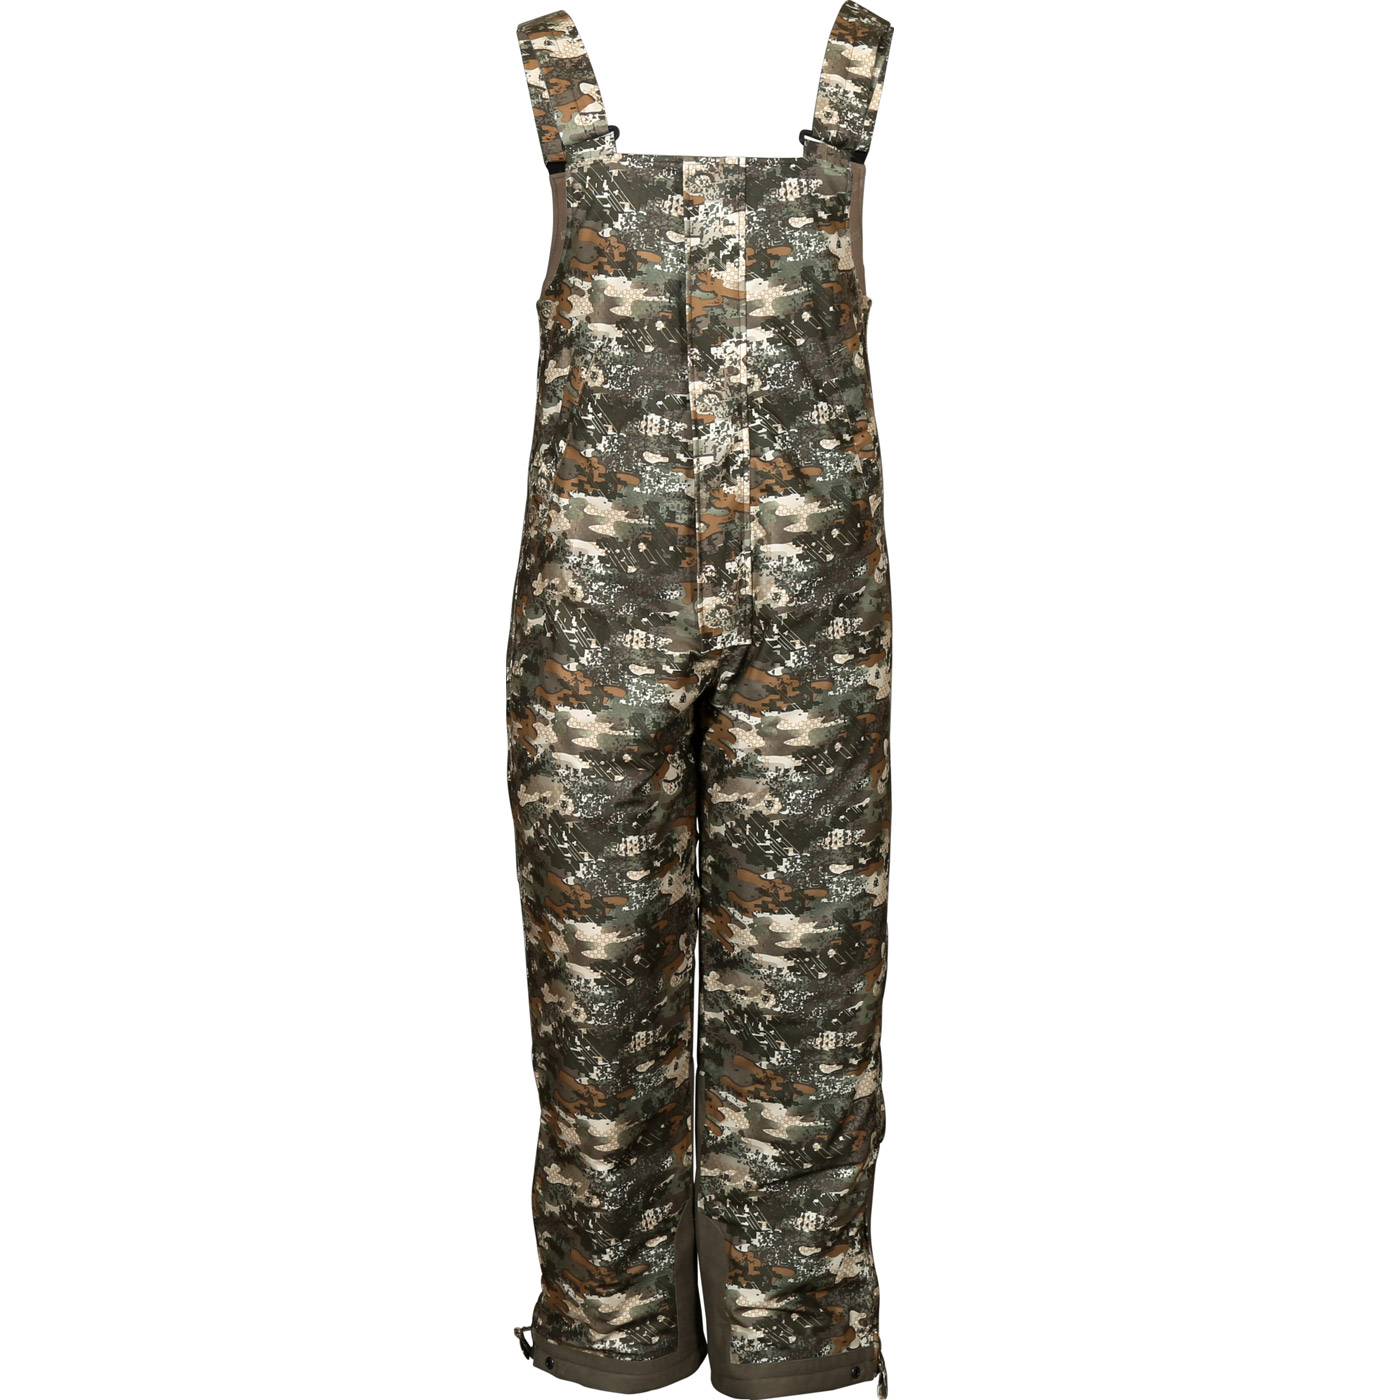 ffb6c02c68ff5 Rocky ProHunter Waterproof Insulated Bibs, , large. Insulated waterproof  camouflage ...